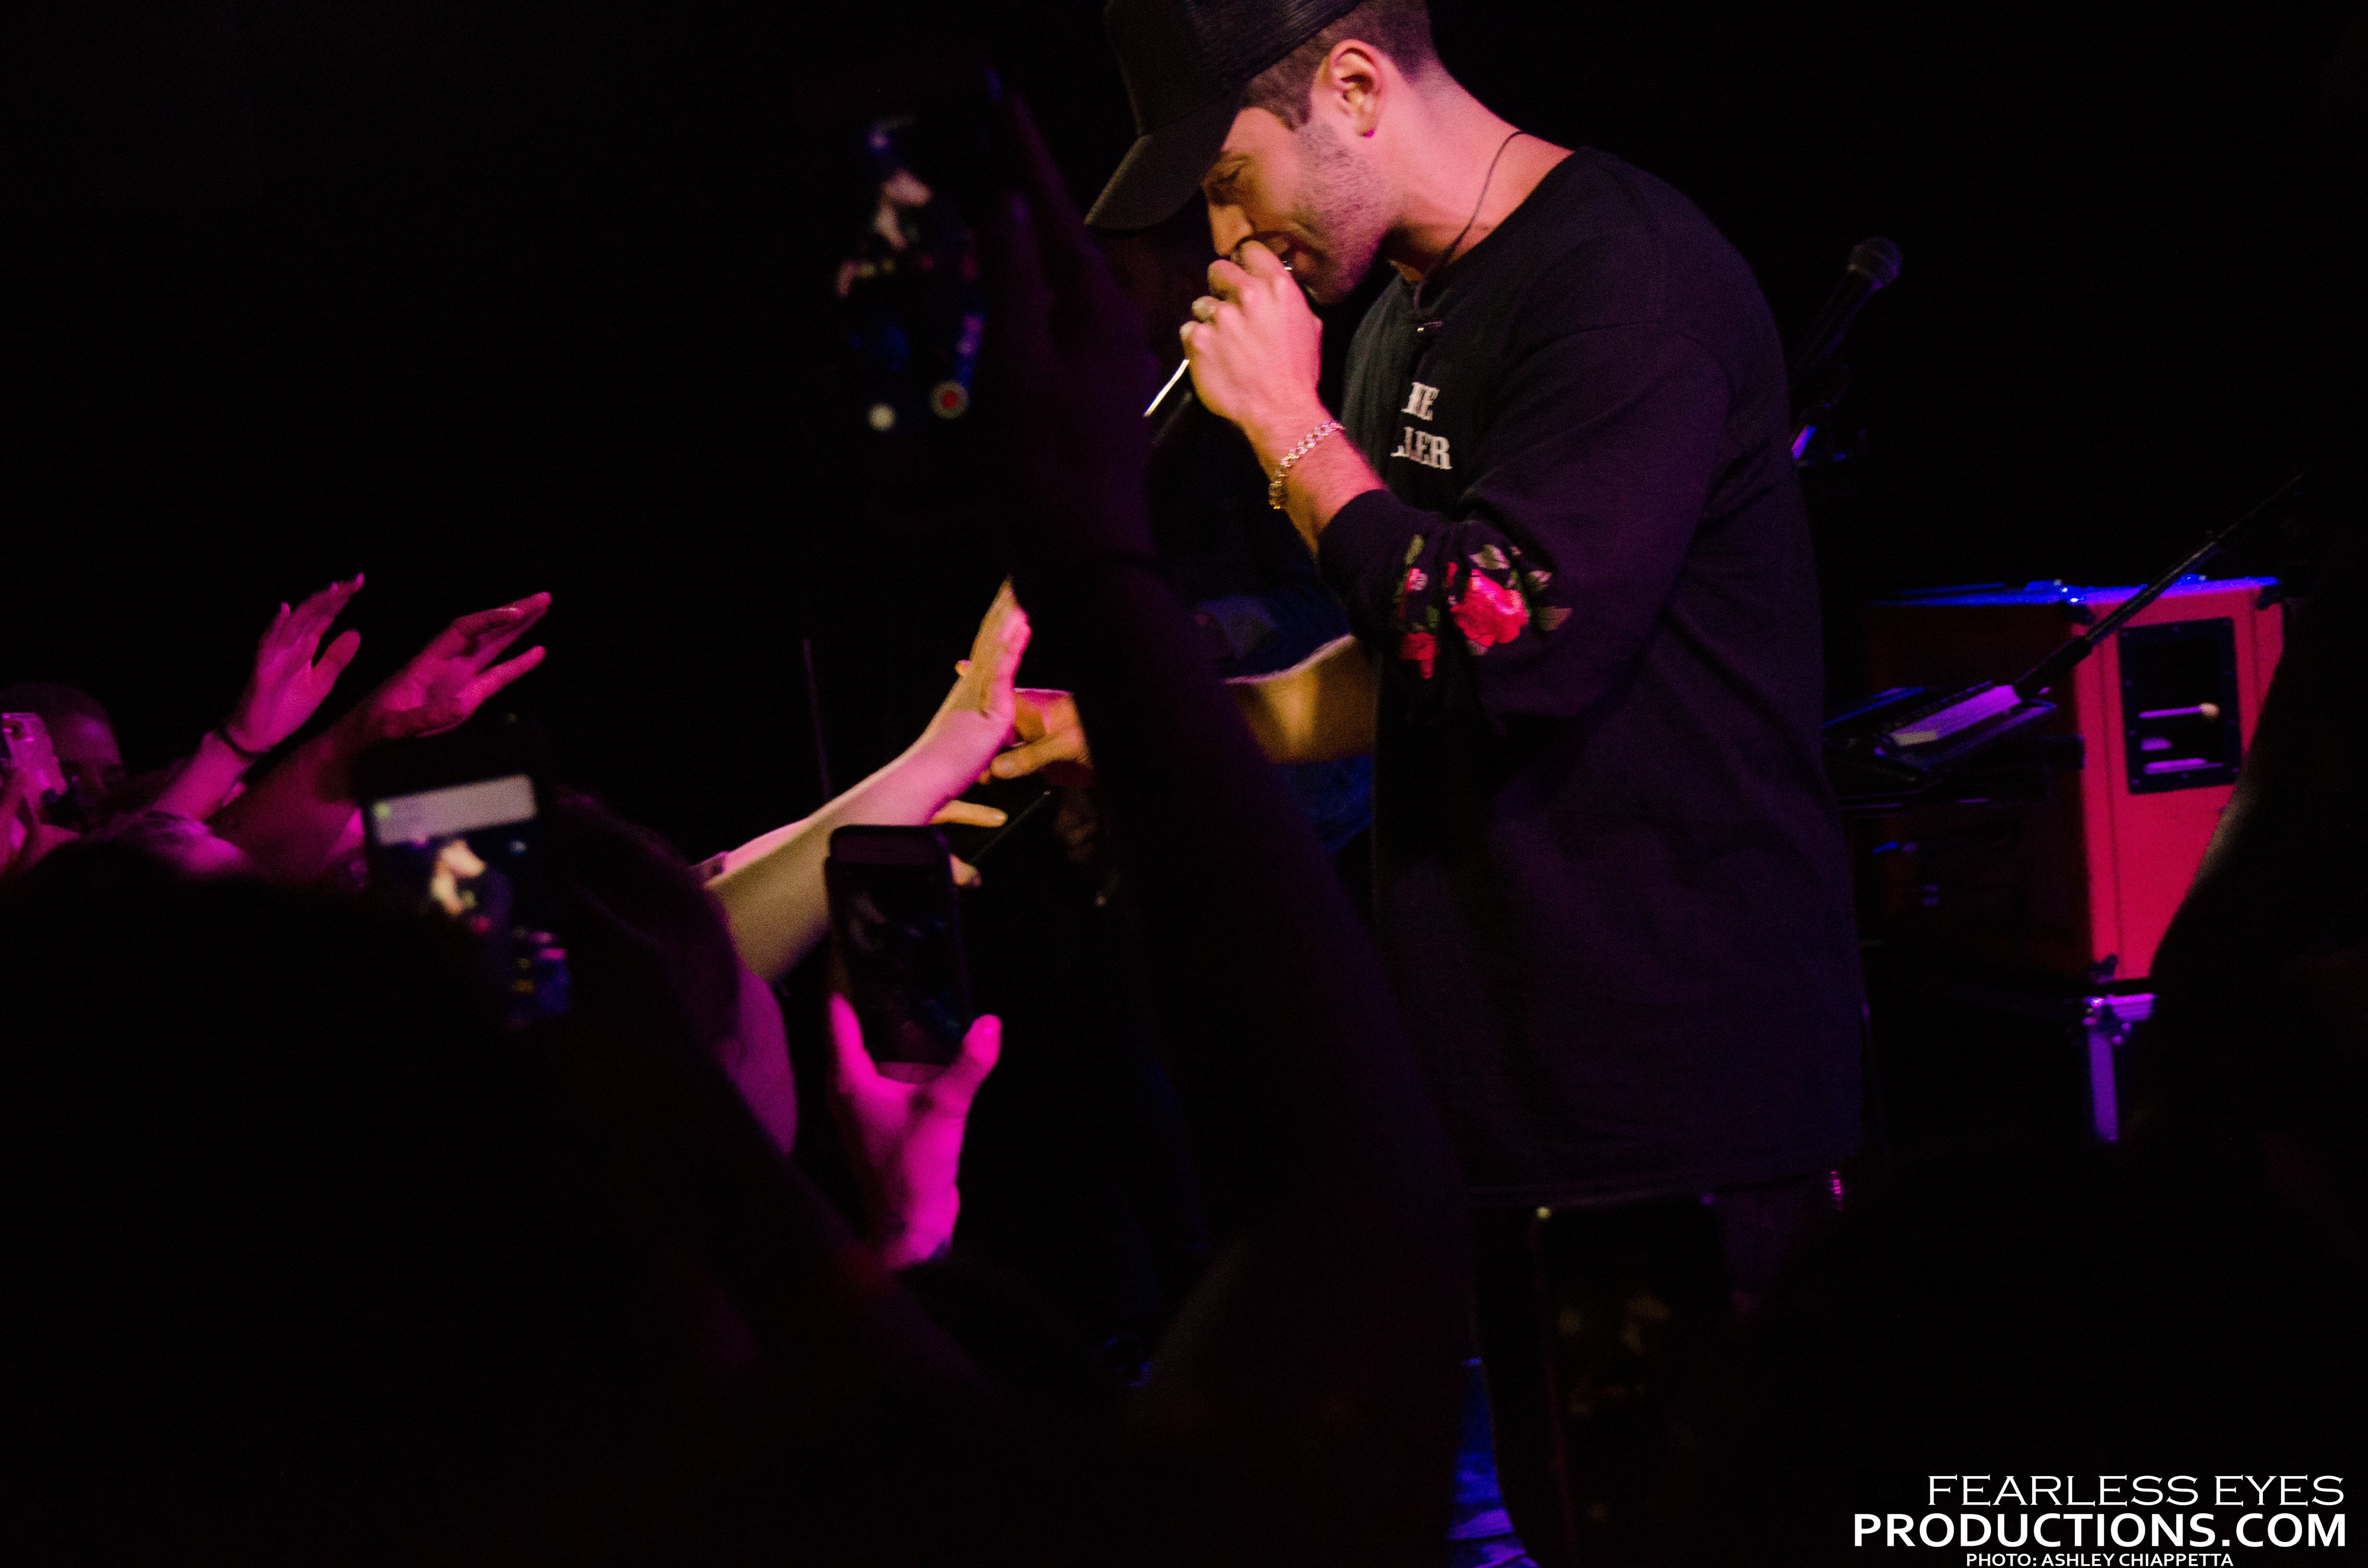 Jake Miller wows sold-out First Avenue – 7th St Entry crowd despite